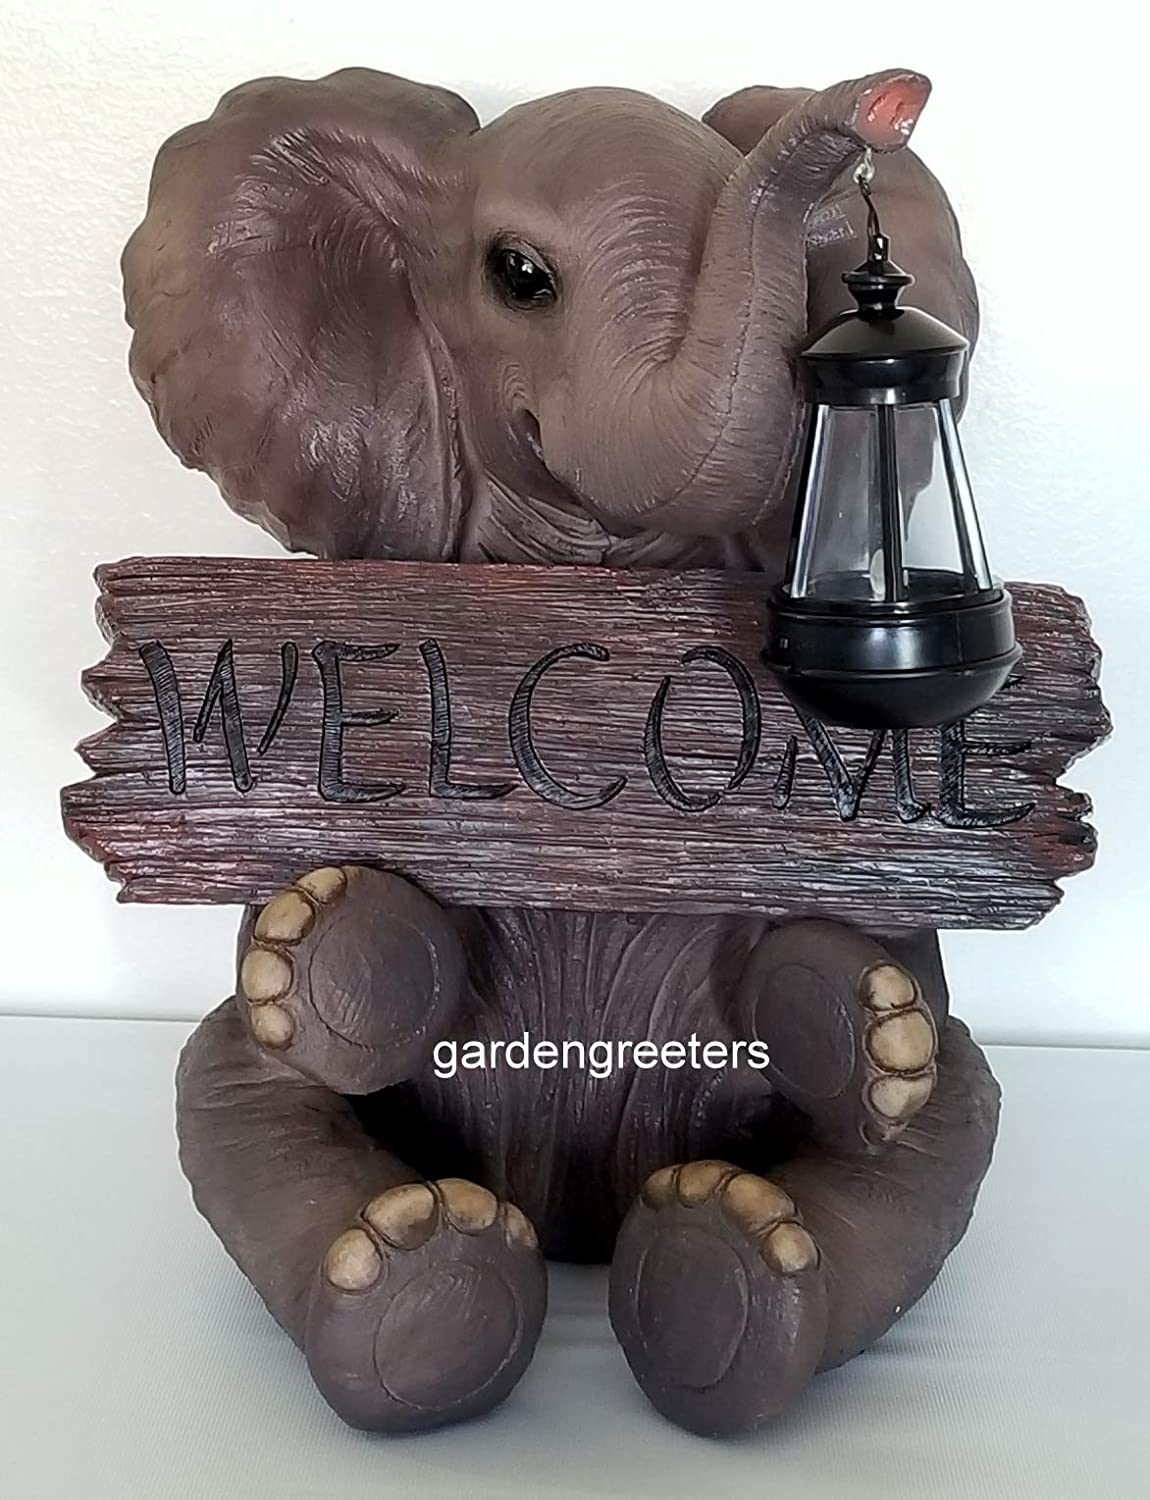 Gardengreetersllc SOLAR ELEPHANT WITH WELCOME SIGN STATUE